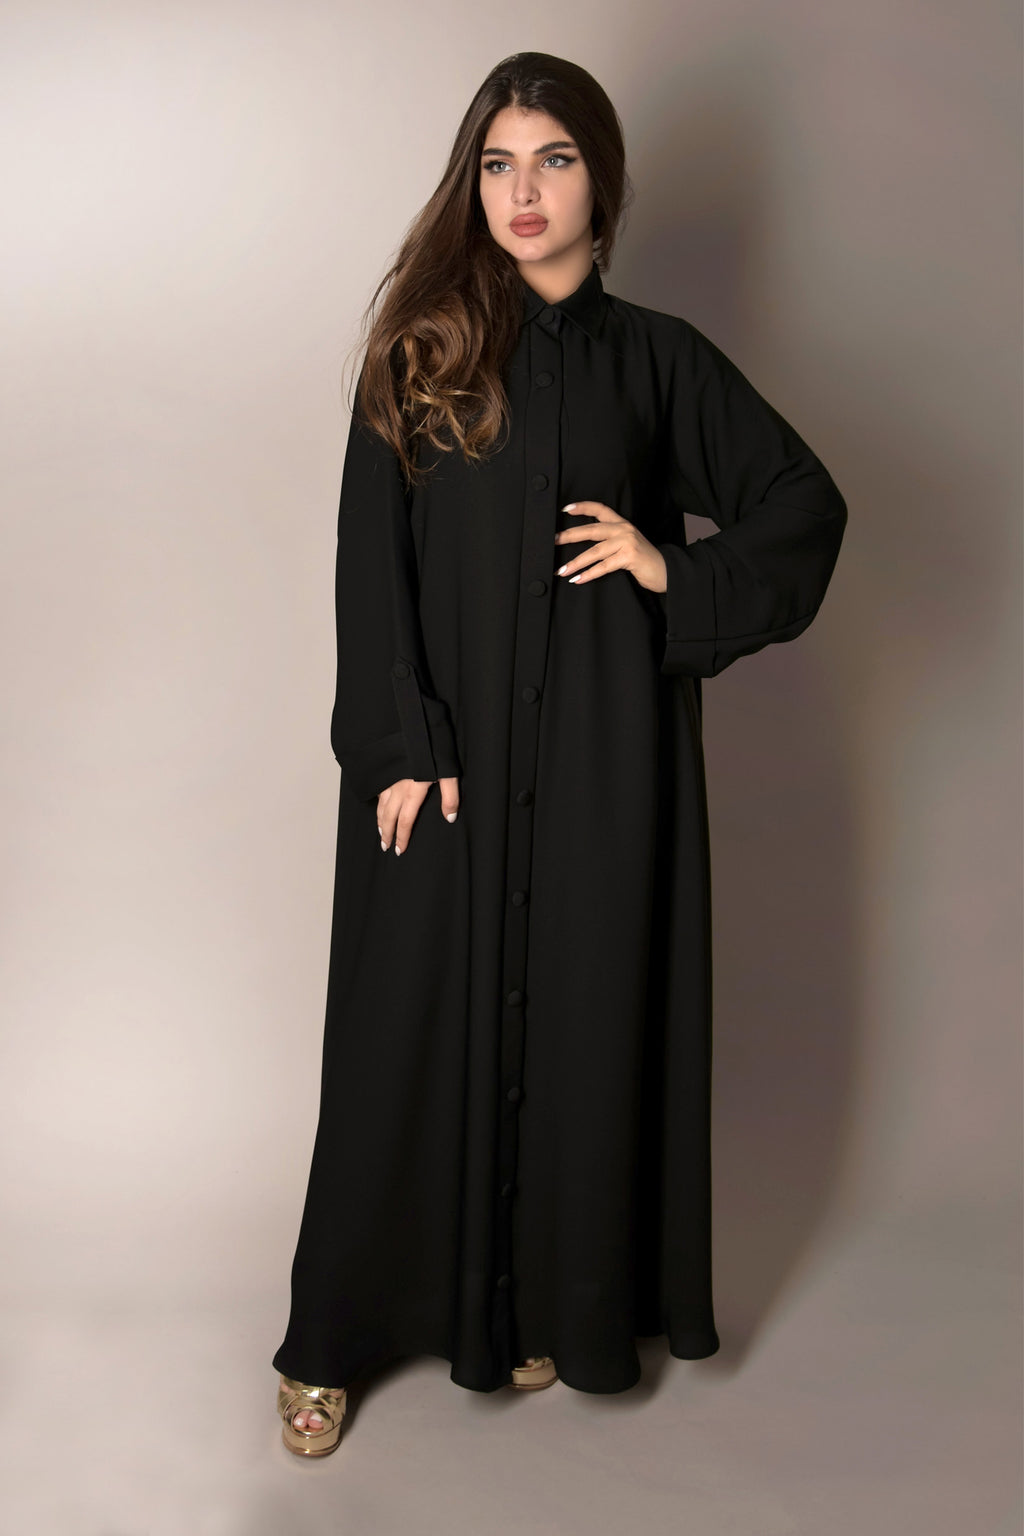 BLACK COLLARED BUTTONED STYLE PLAIN ABAYA.